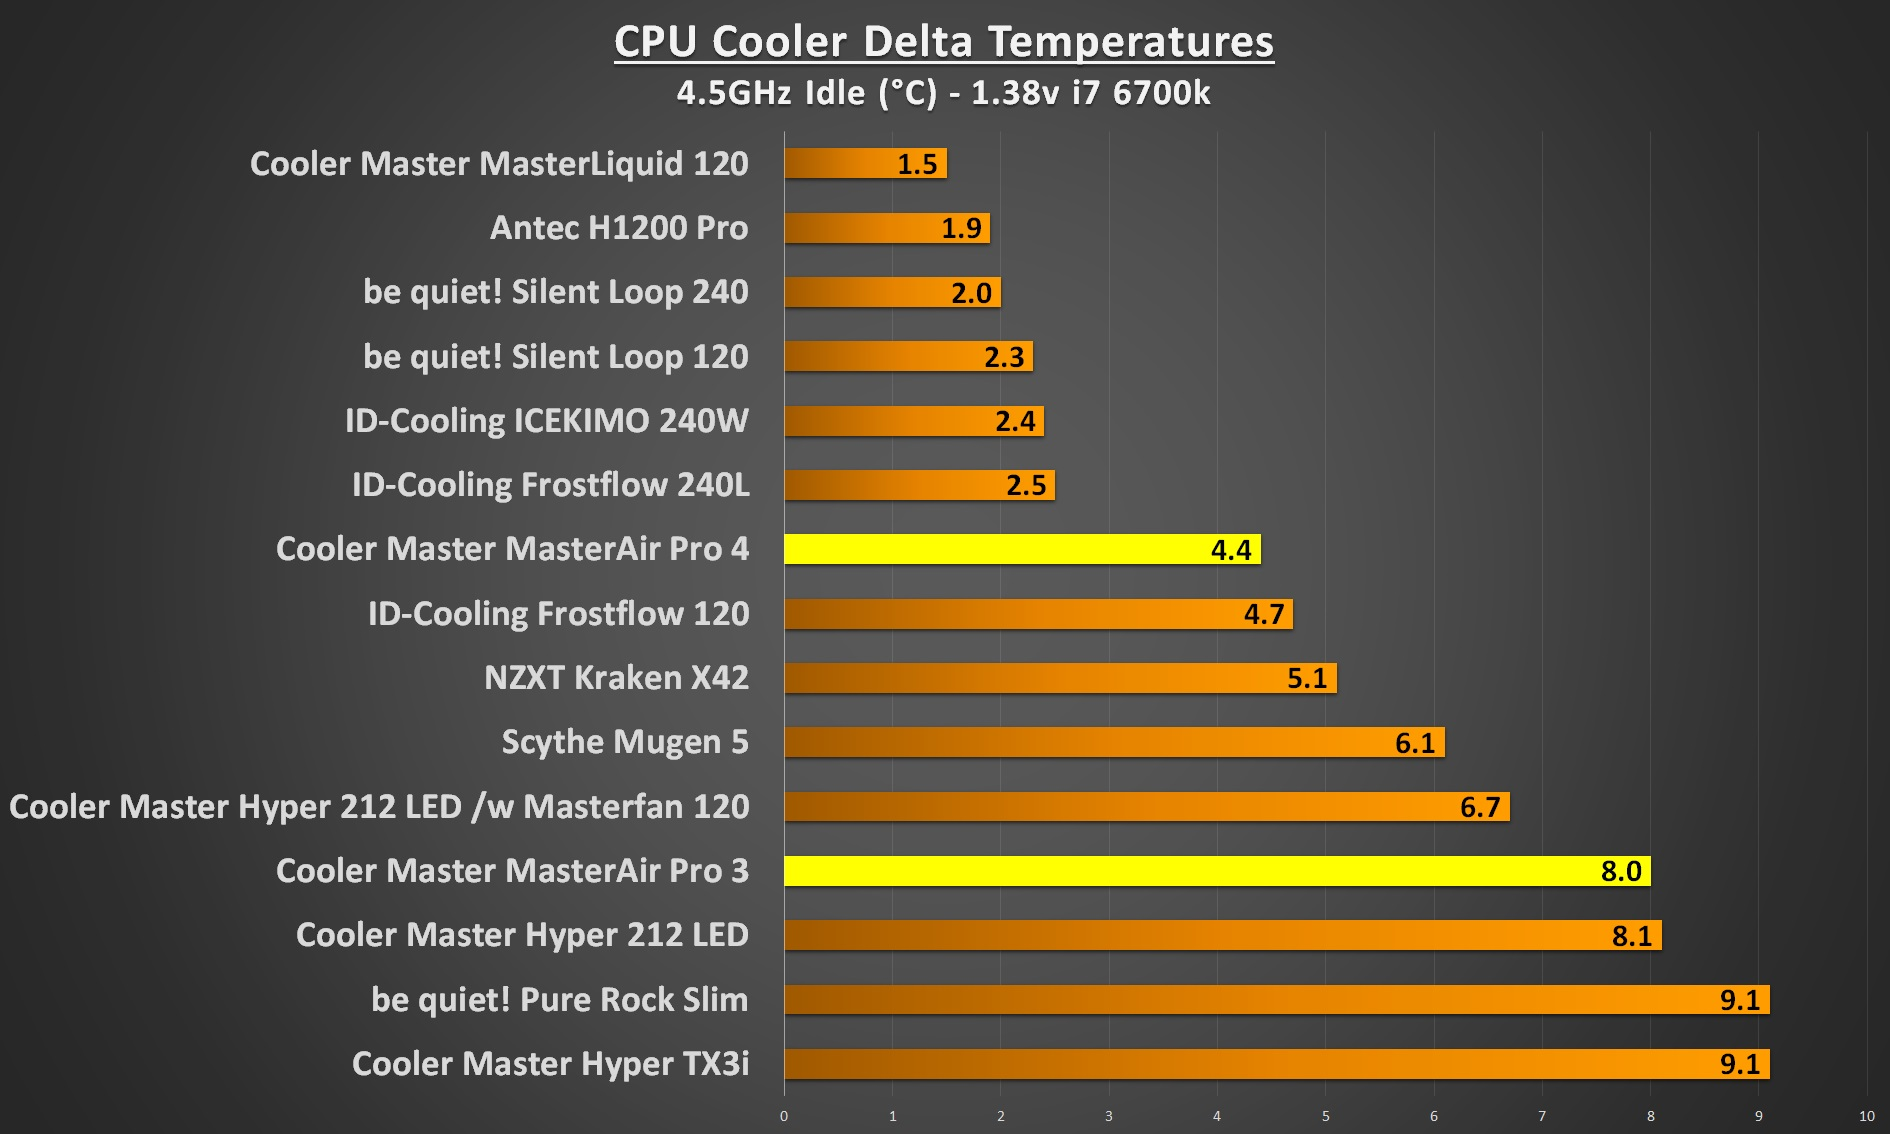 cooler master masterair pro 4.5Ghz idle